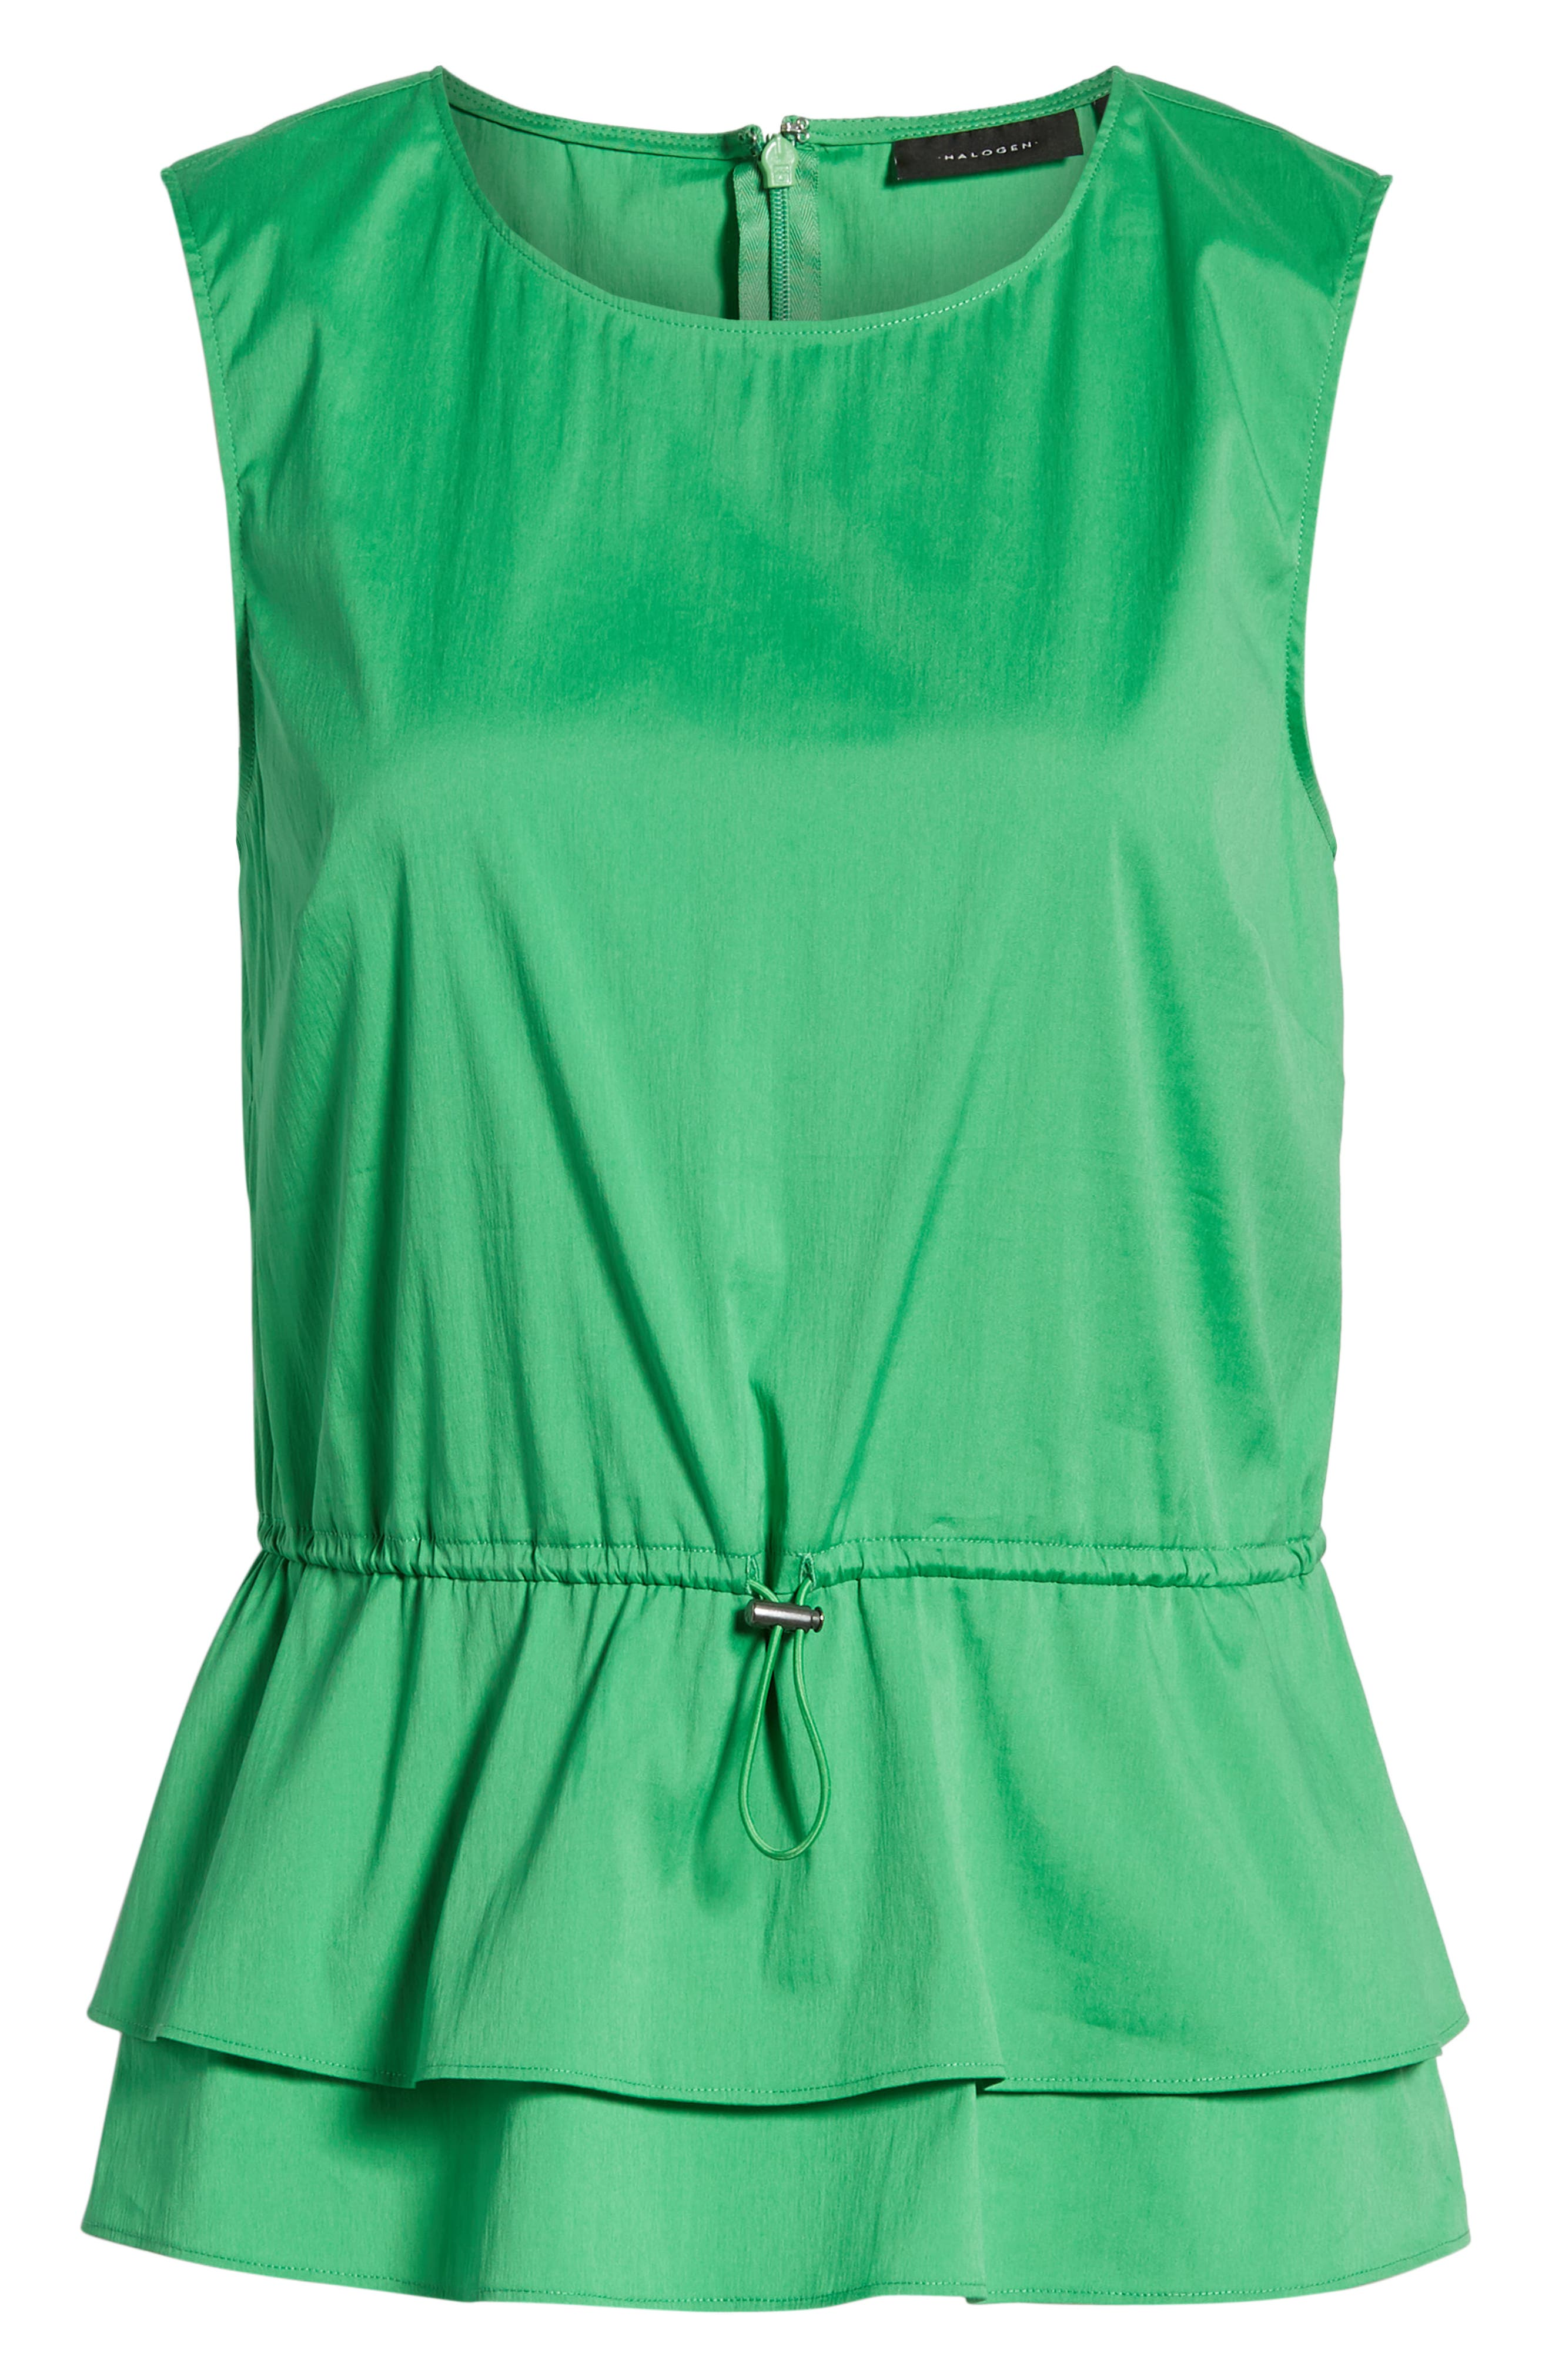 Stretch Cotton Blend Peplum Top,                             Alternate thumbnail 6, color,                             Green Kelly